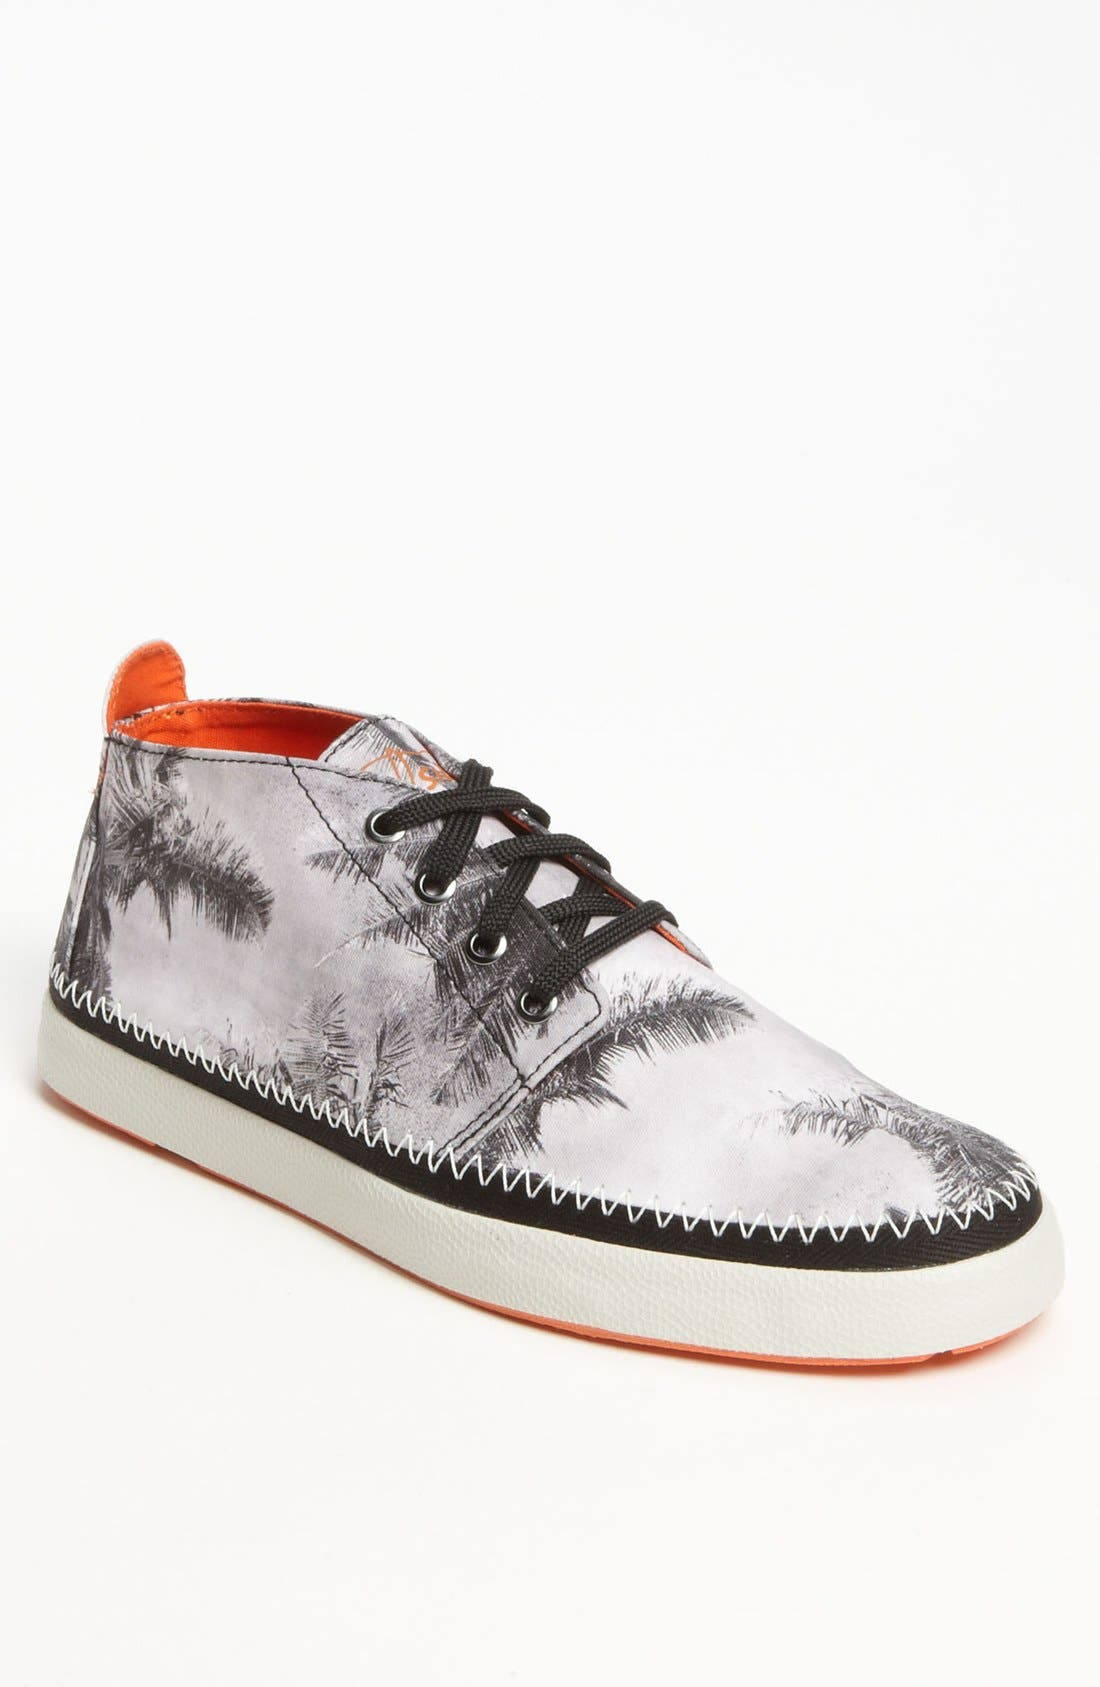 Top-Sider<sup>®</sup> 'Drifter' Chukka Boot,                         Main,                         color, Black/ White Print